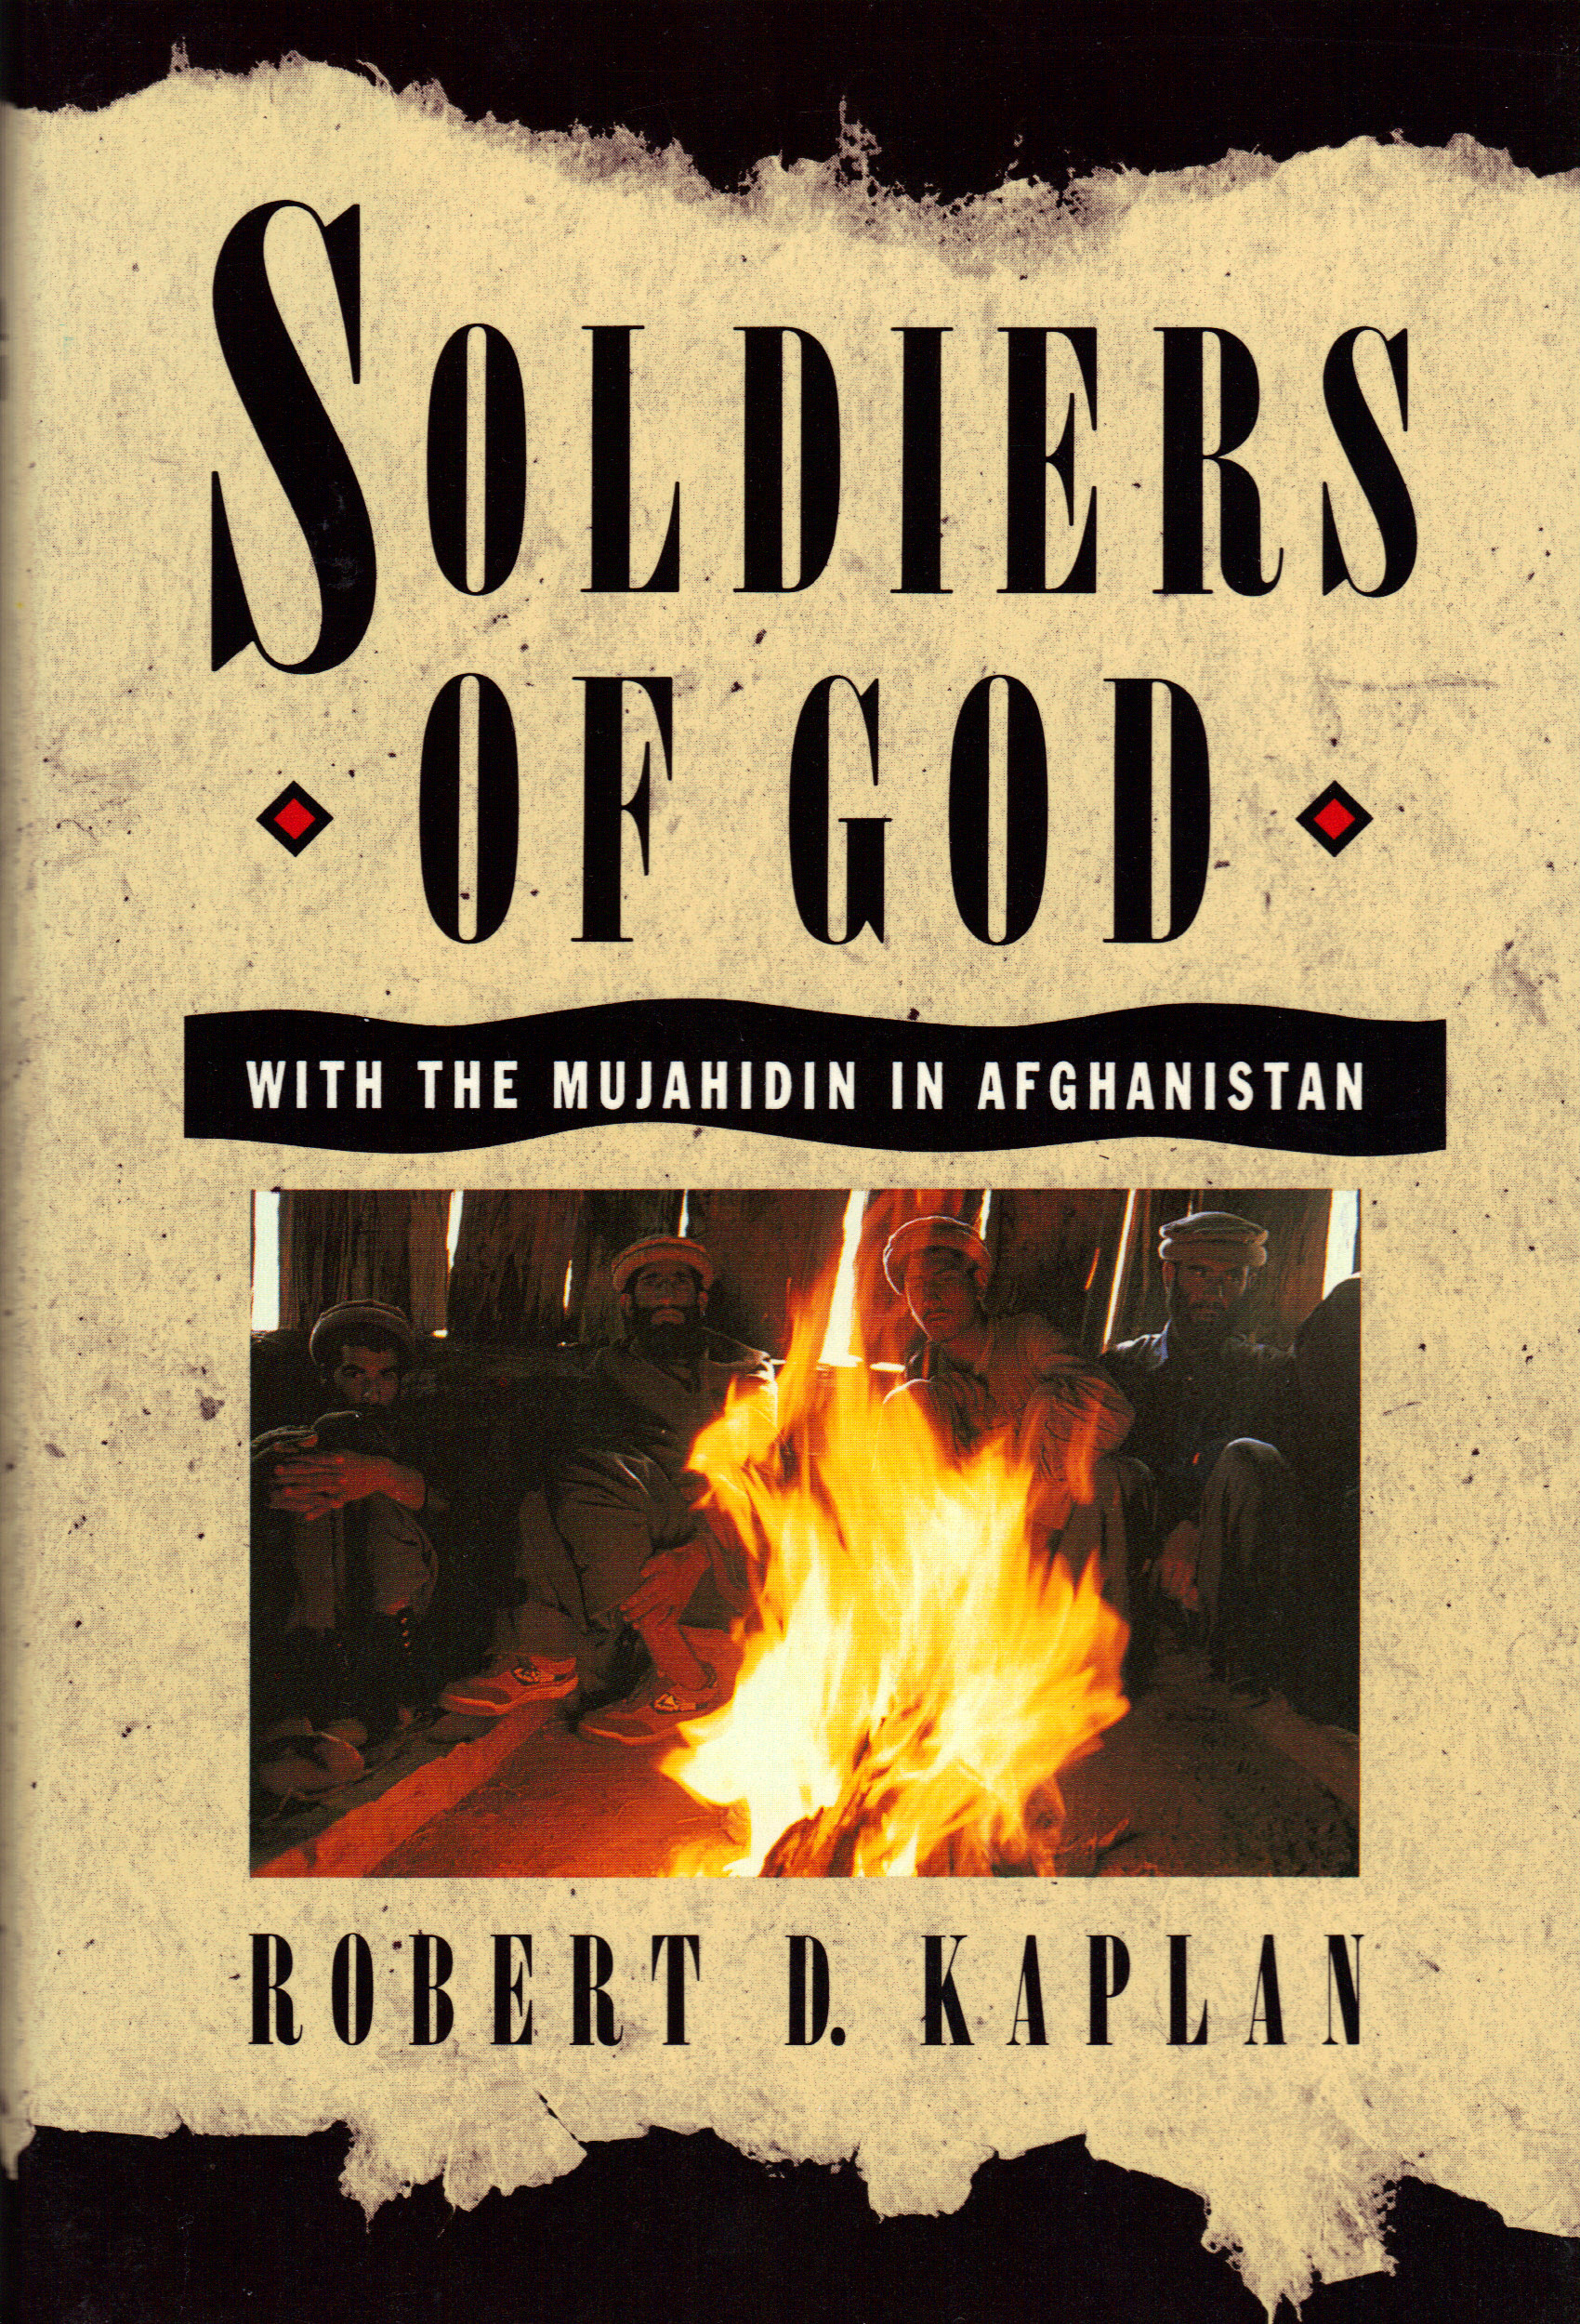 Image for SOLDIERS OF GOD ~ With the Mujahidin in Afghanistan